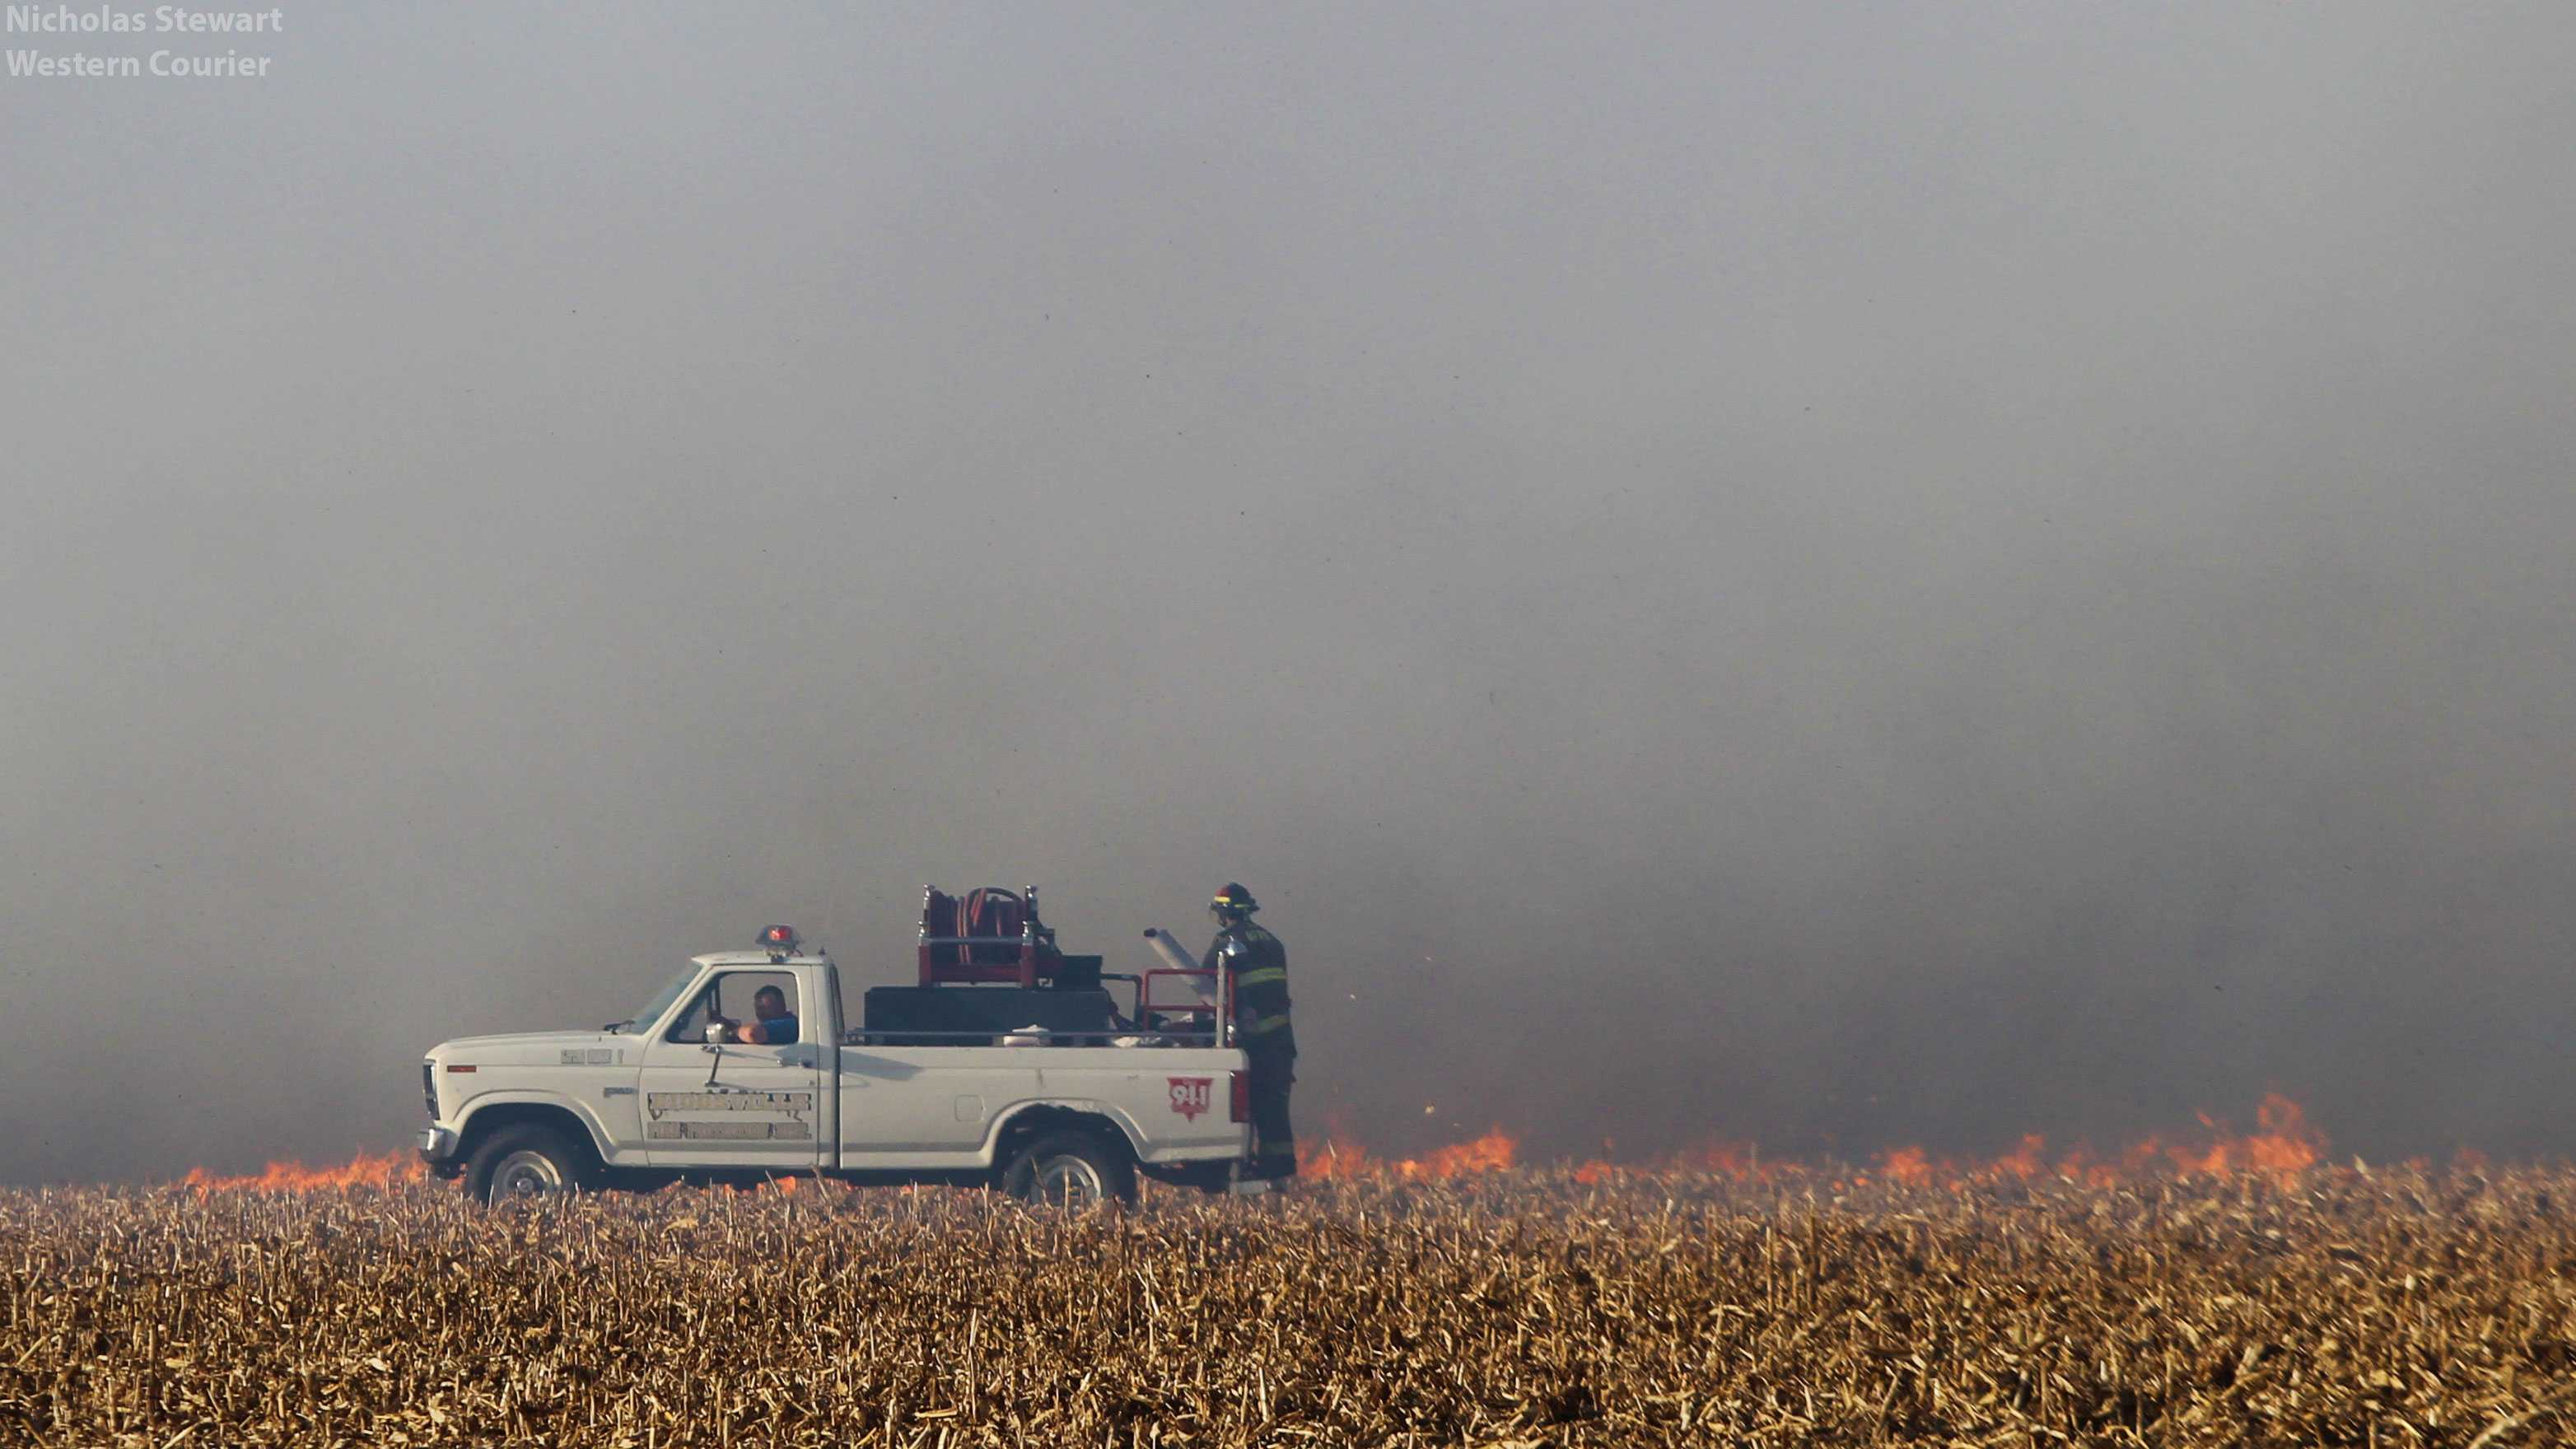 Firefighters use one of the many firefighting vehicles to combat the field fire. Last Monday's fire required mutual aid from several local departments.